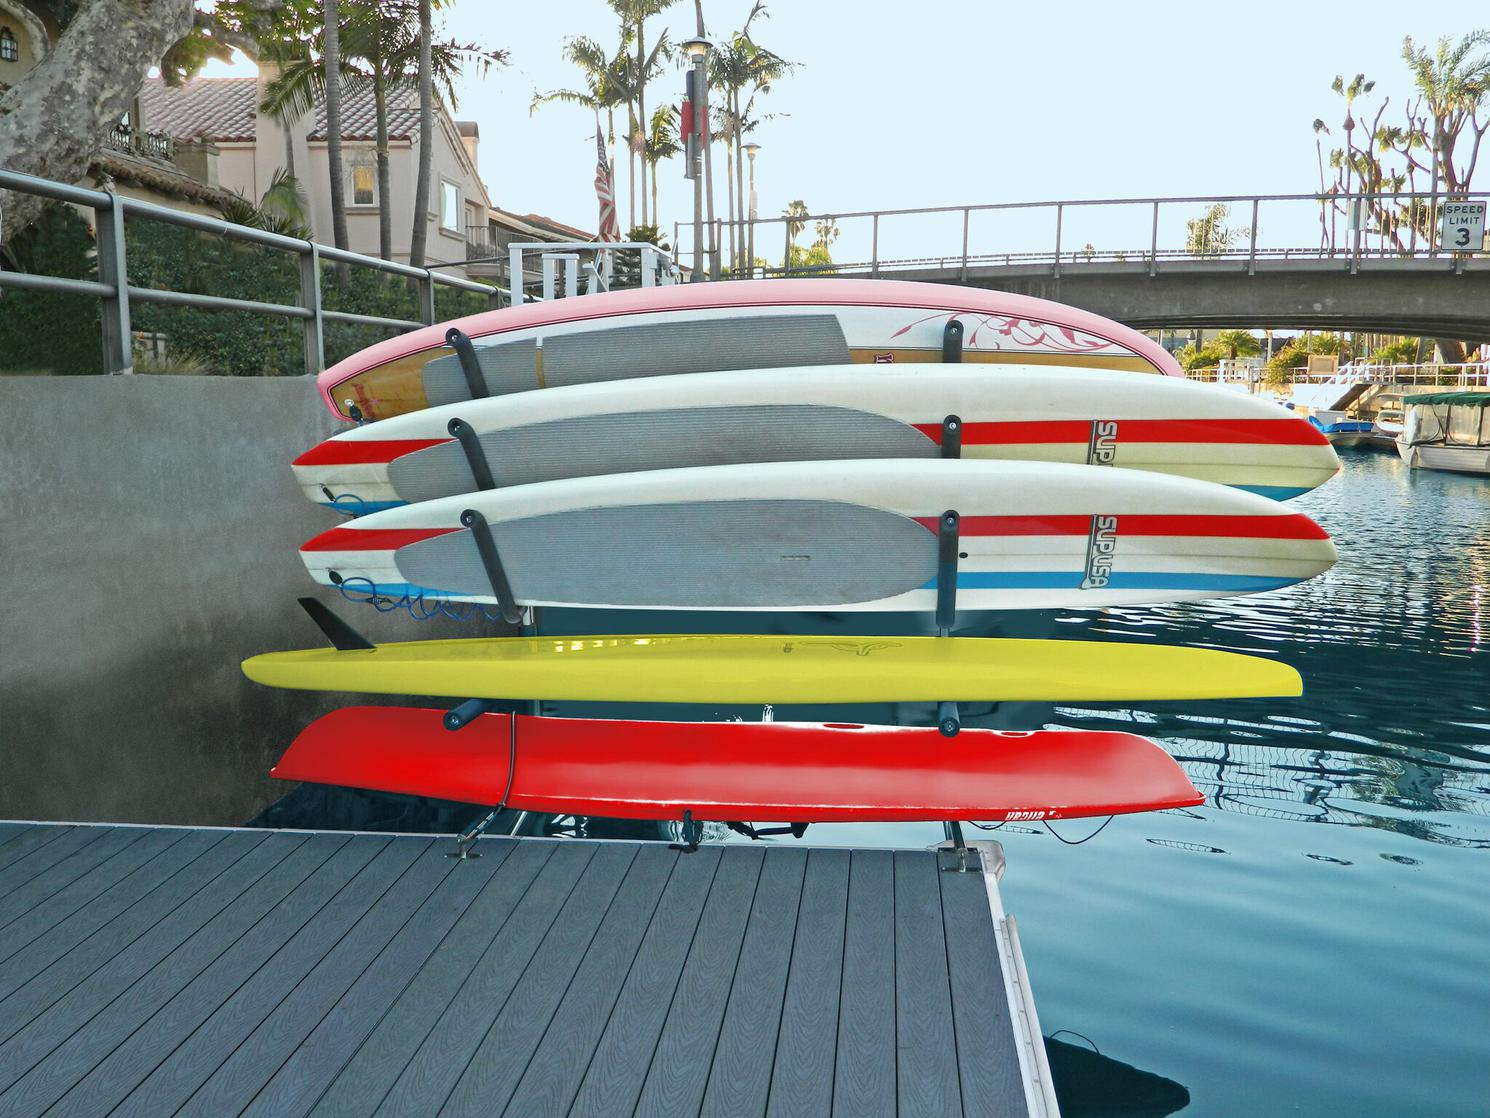 2021 Magma SUP Rack - Over the Water with 2 sets Straight Arms